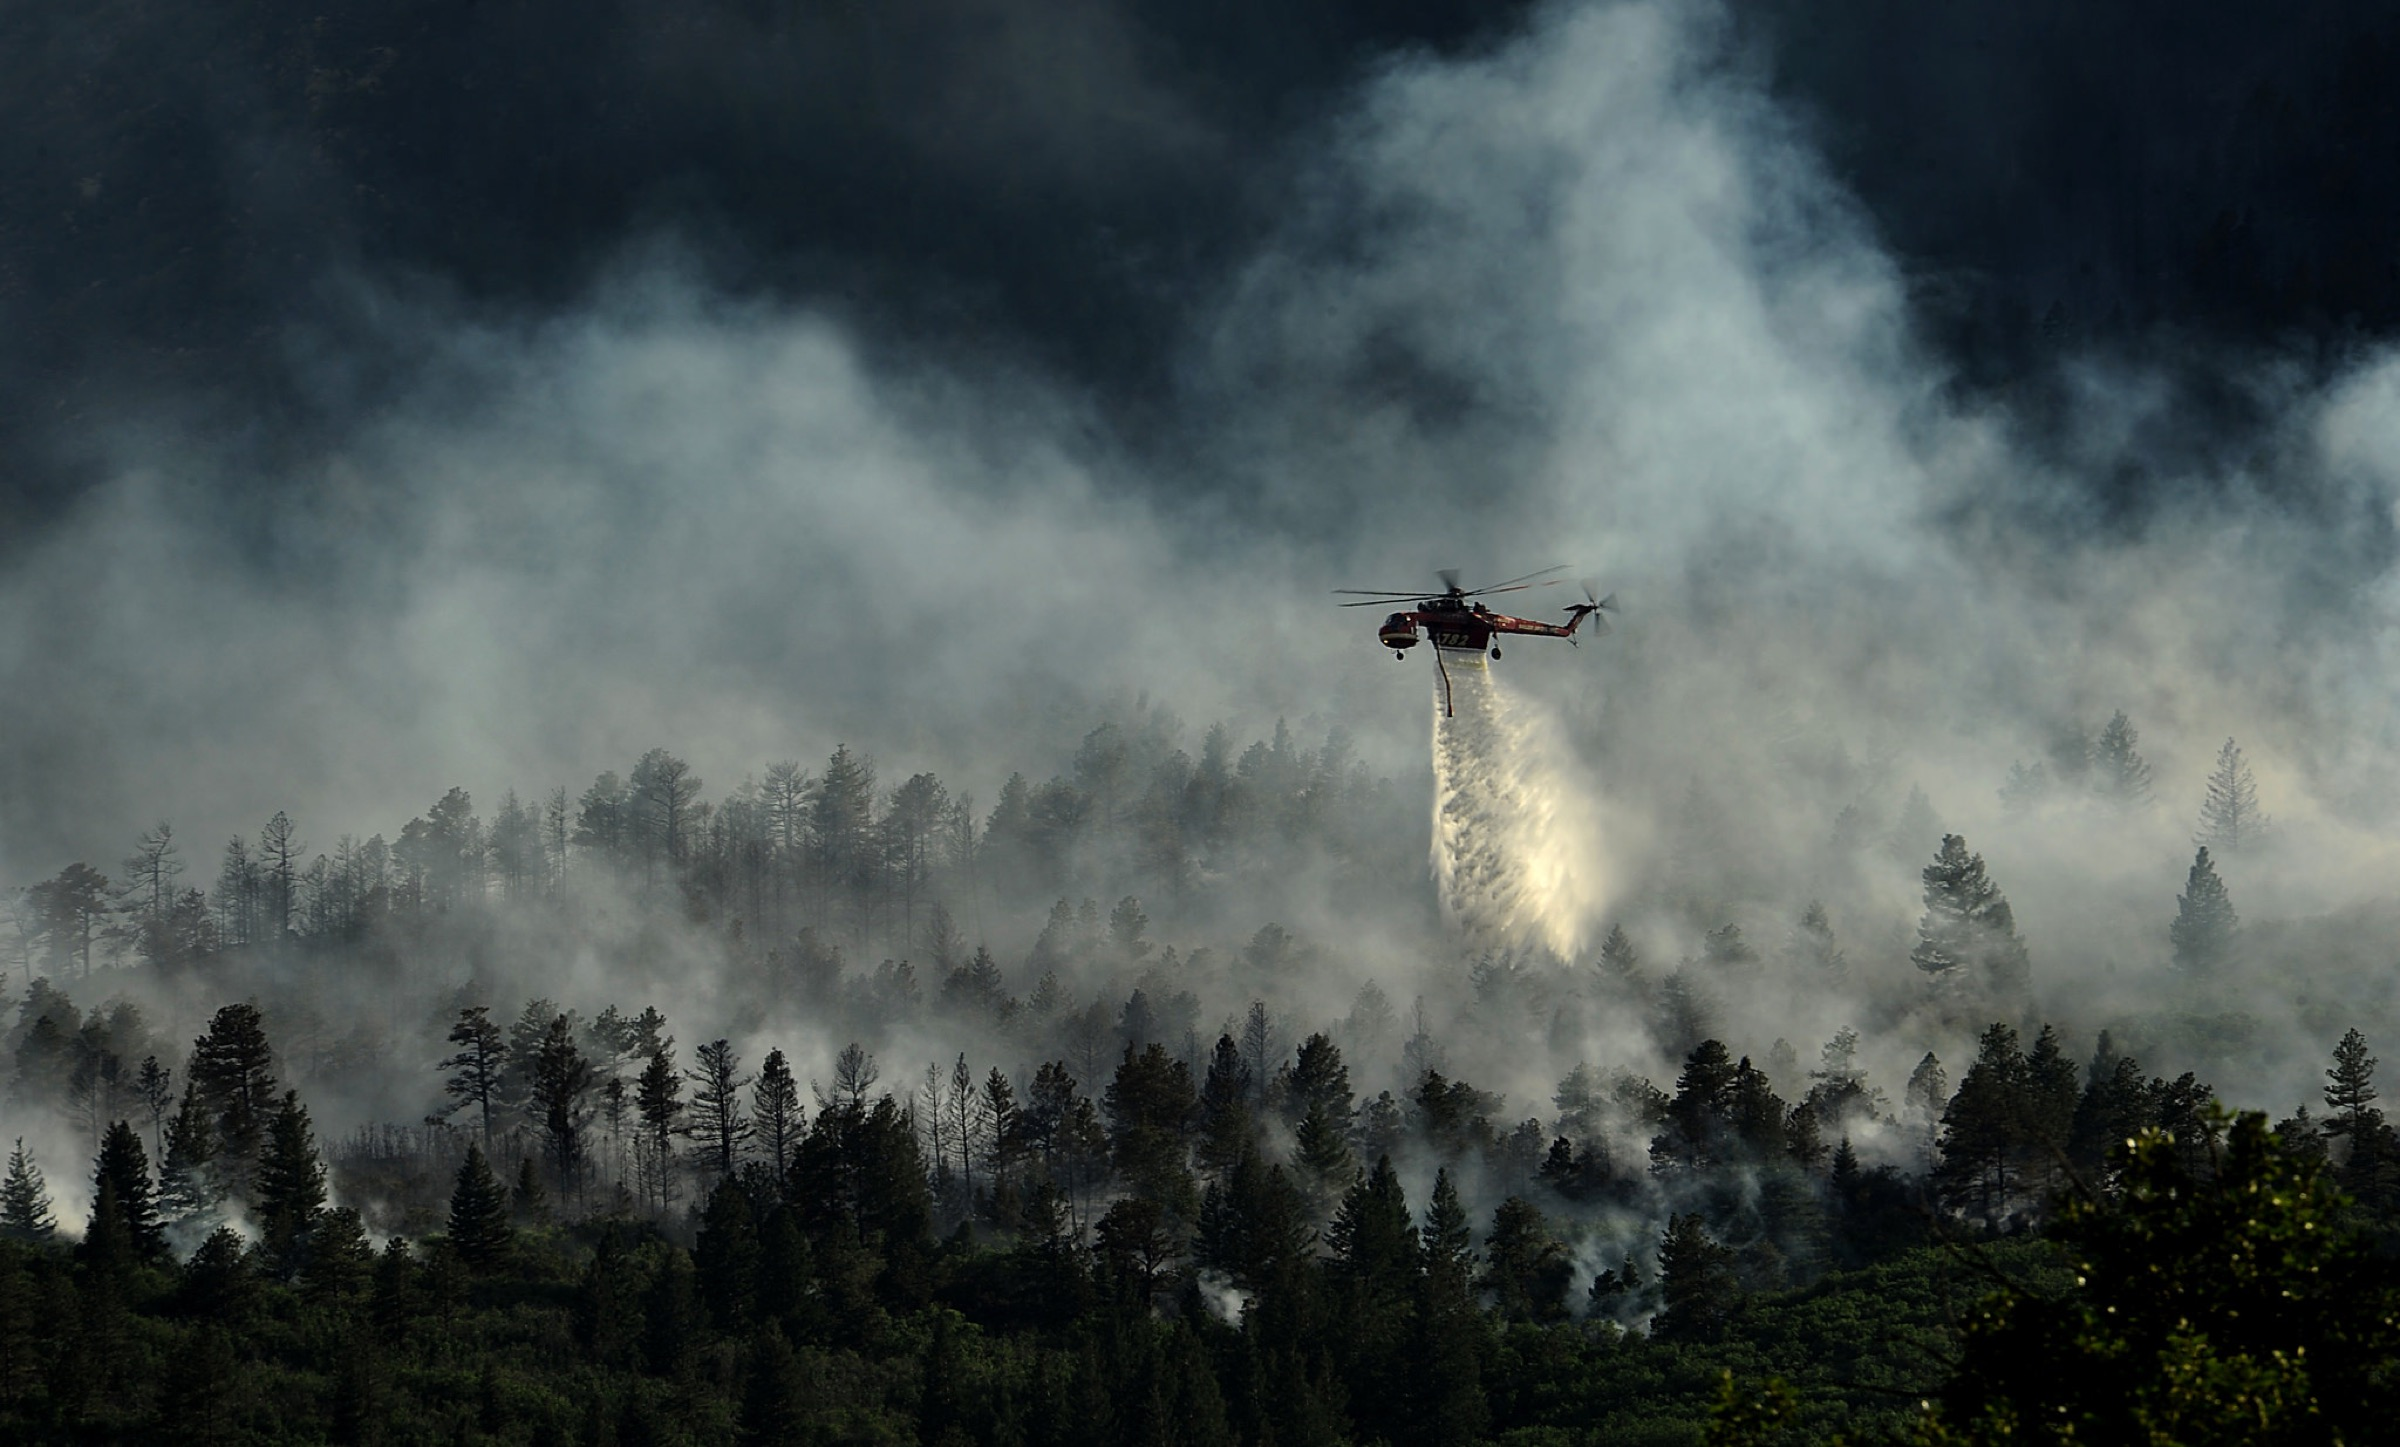 A helicopter drops water on the fire as firefighters continued to battle the blaze that burned into the evening hours in Waldo Canyon on the U.S. Air Force Academy near Colorado Springs on June 27, 2012. Photograph by Master Sgt. Jeremy Lock / U.S. Air Force (Released)